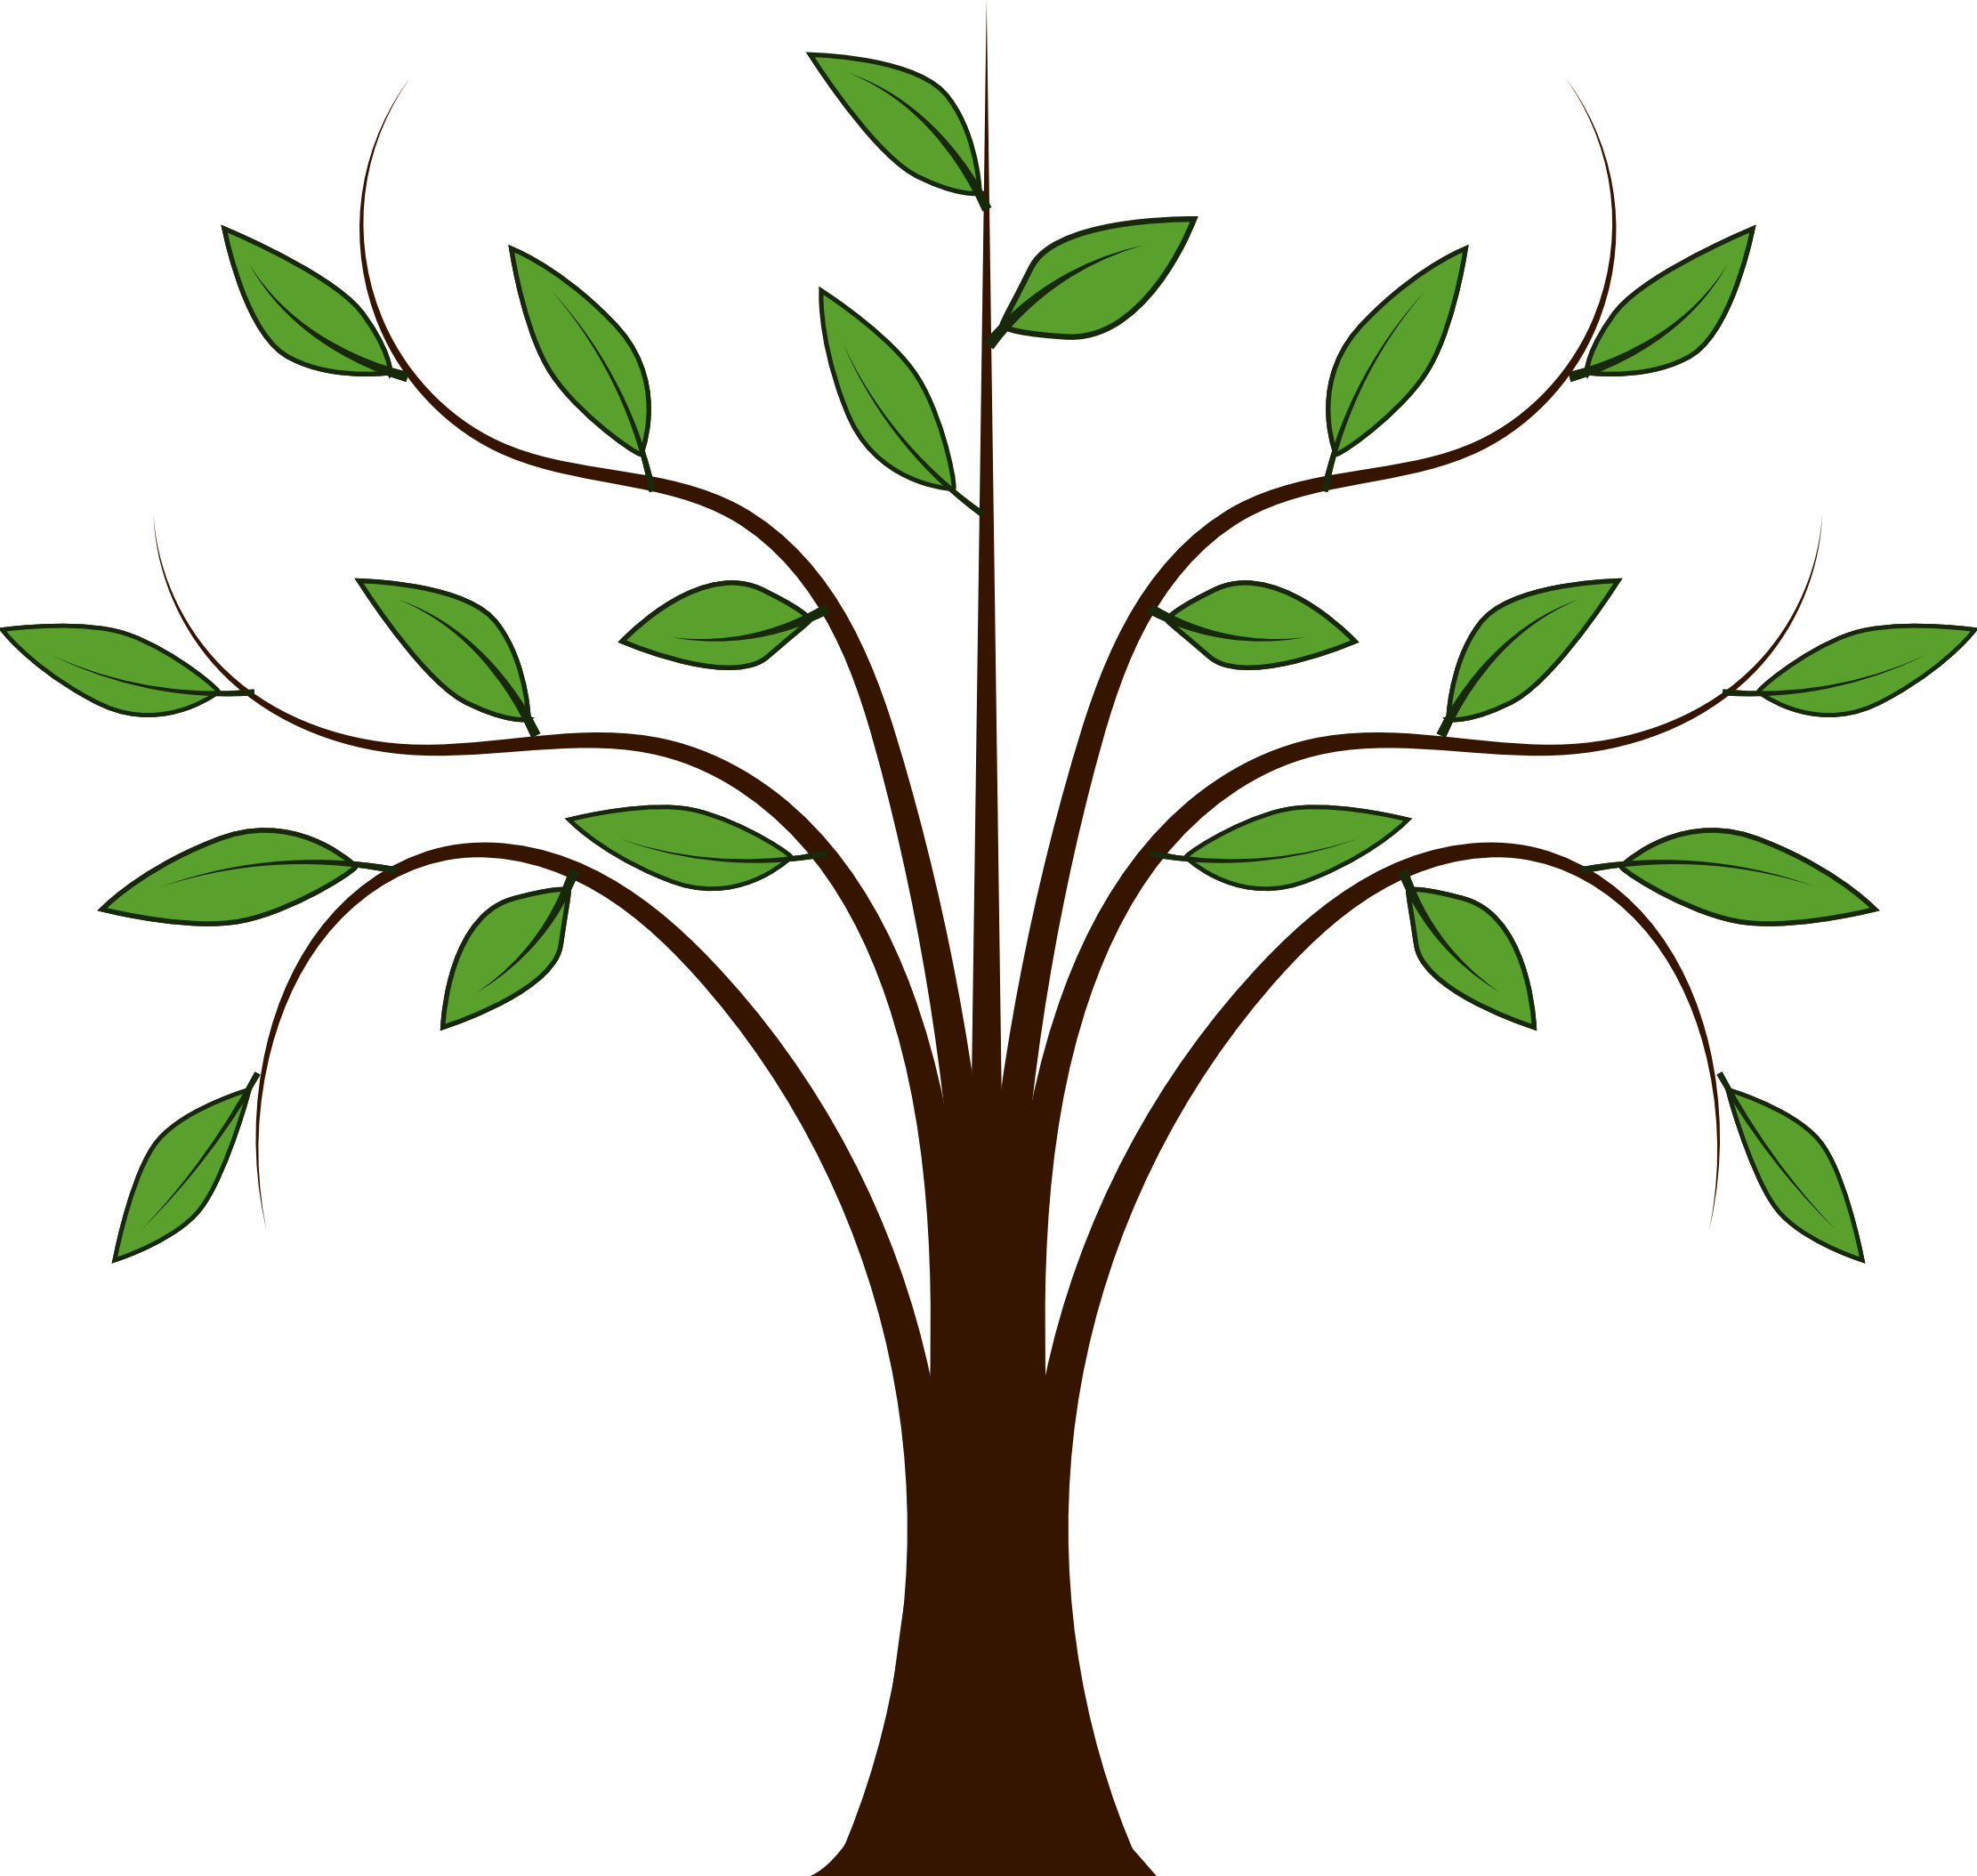 download Oak clipart deciduous tree. Clip art silhouette at.